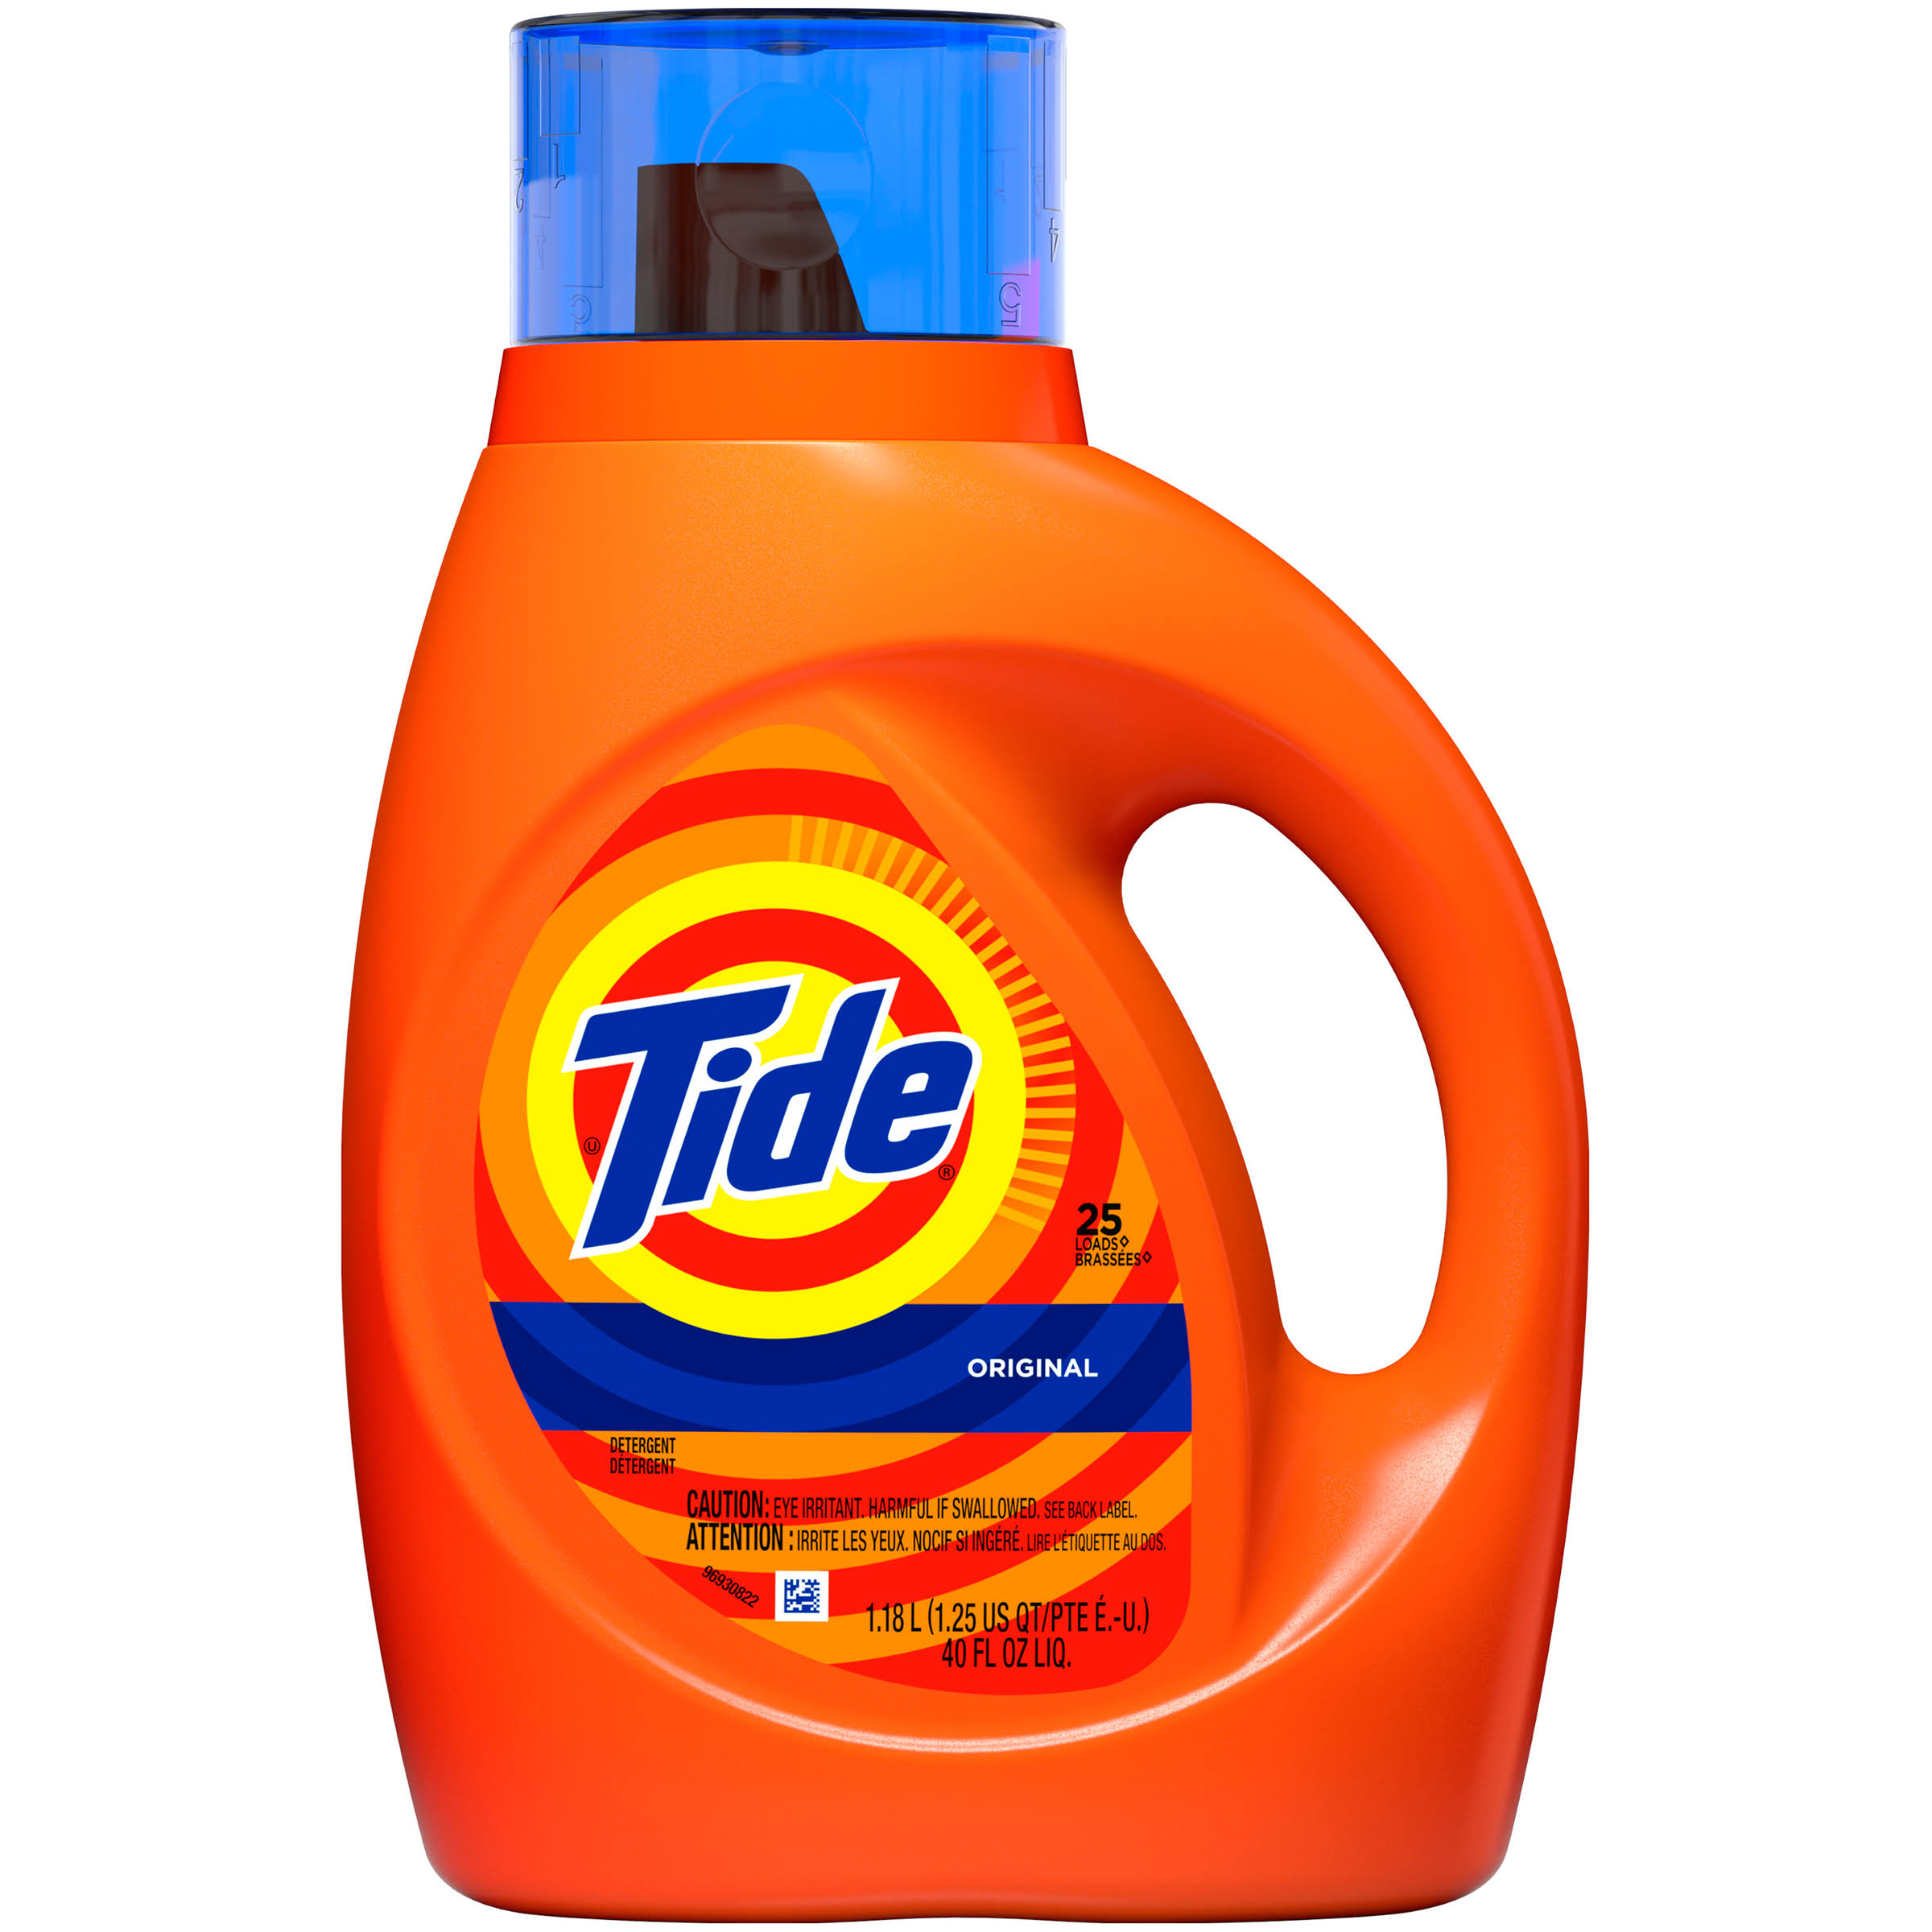 Tide Original Detergent - 40 fl oz, 25 Loads